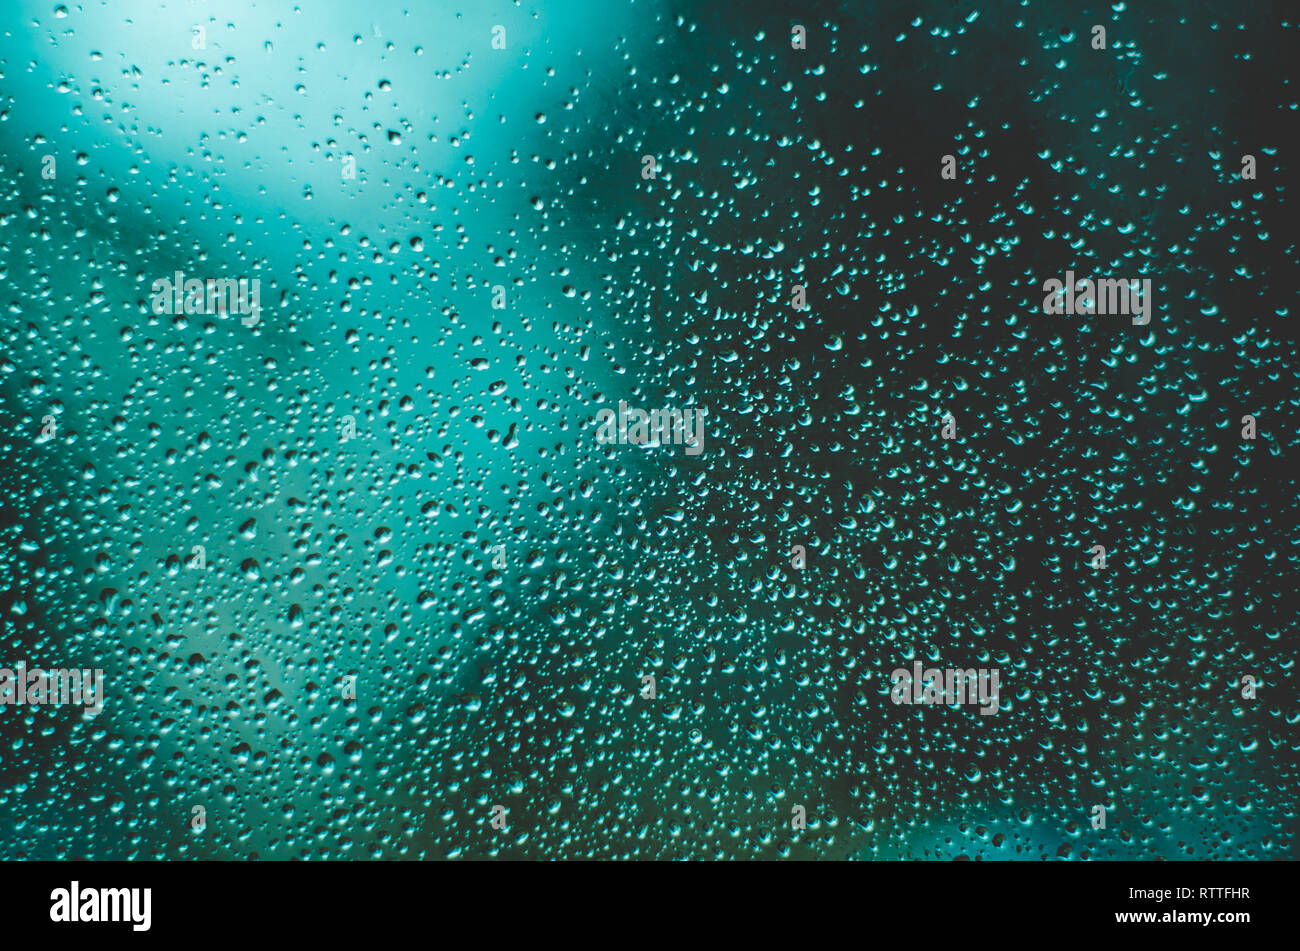 Water Drops On Windows Close Up Against Blurry Dark Teal Background Stock  Photo - Alamy